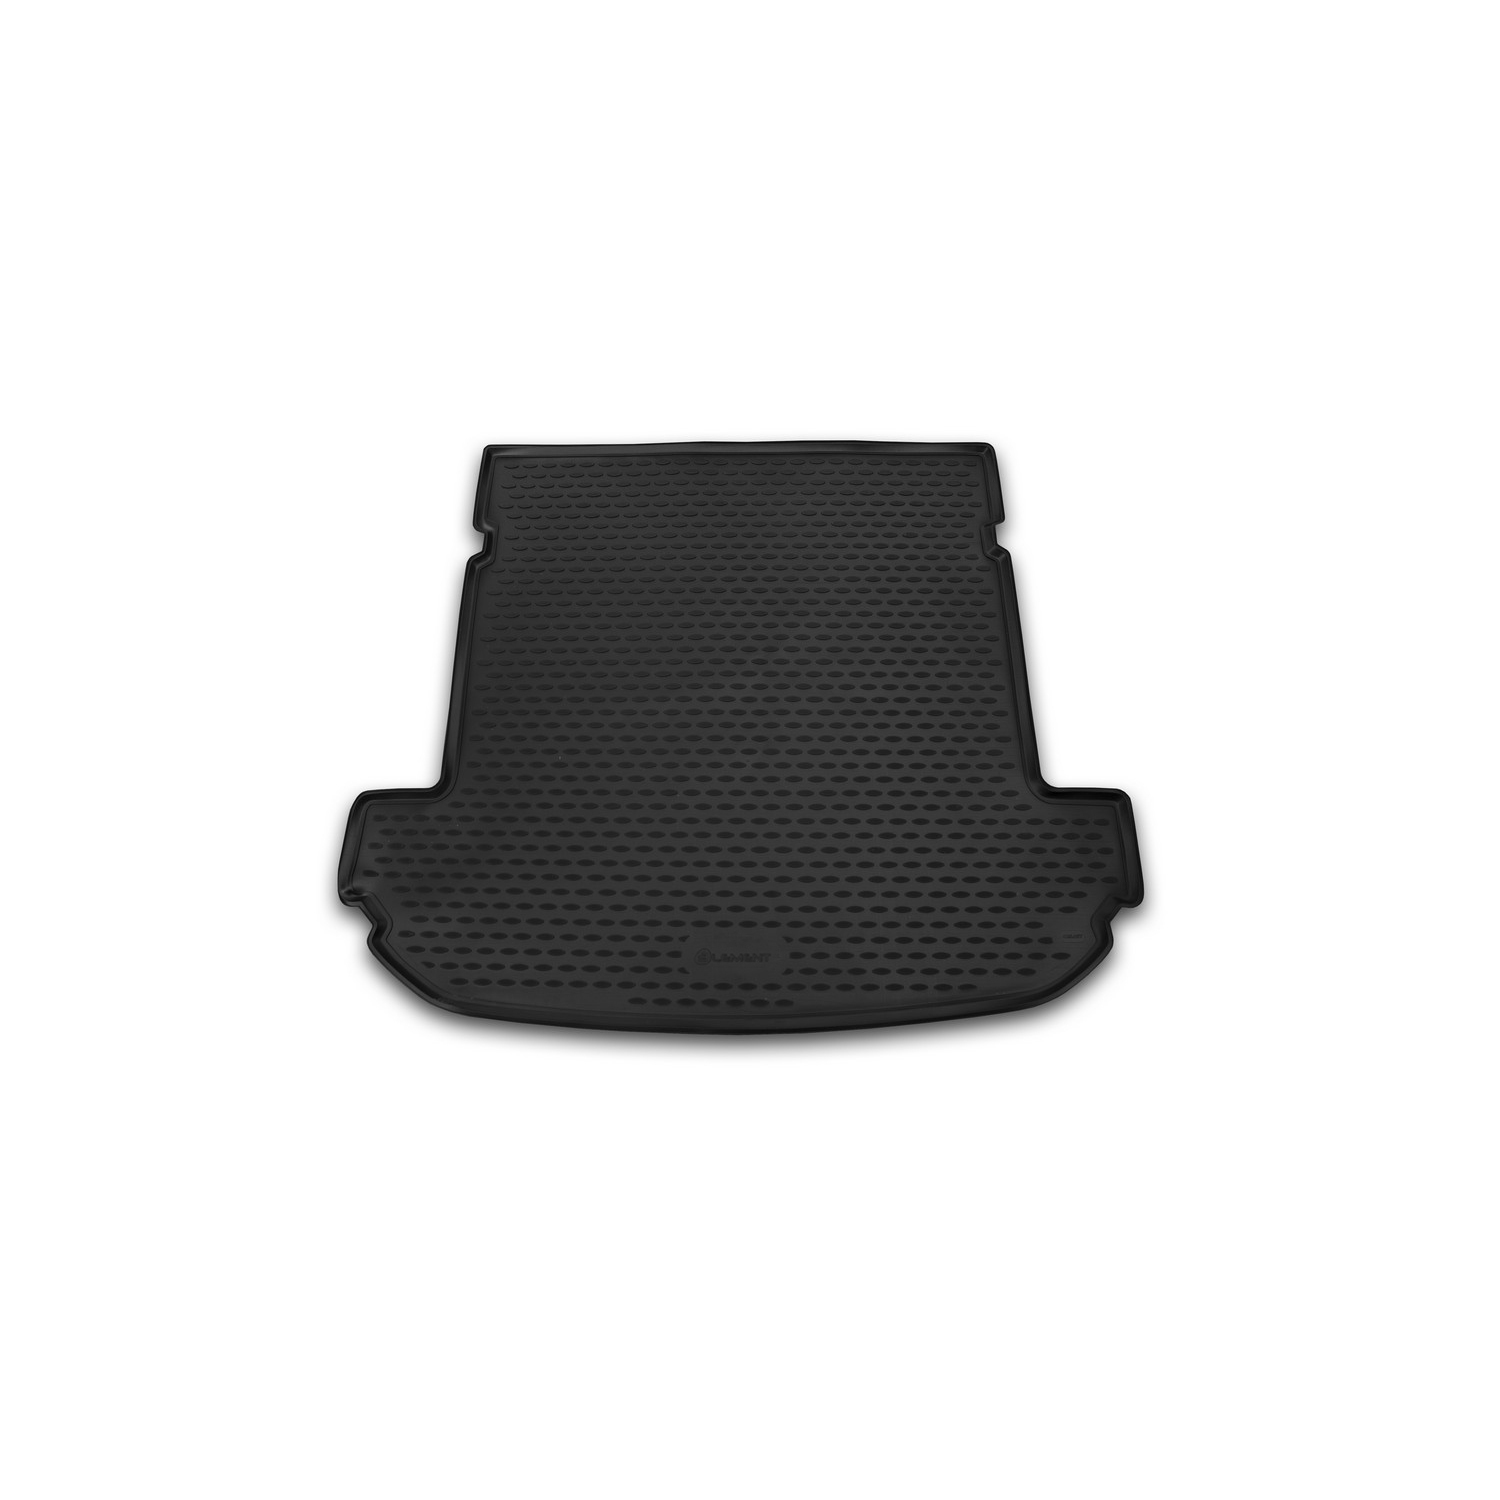 Trunk Mat For KIA Sorento 2015-> Implement. 7, Length, 1 PCs CARKIA00006